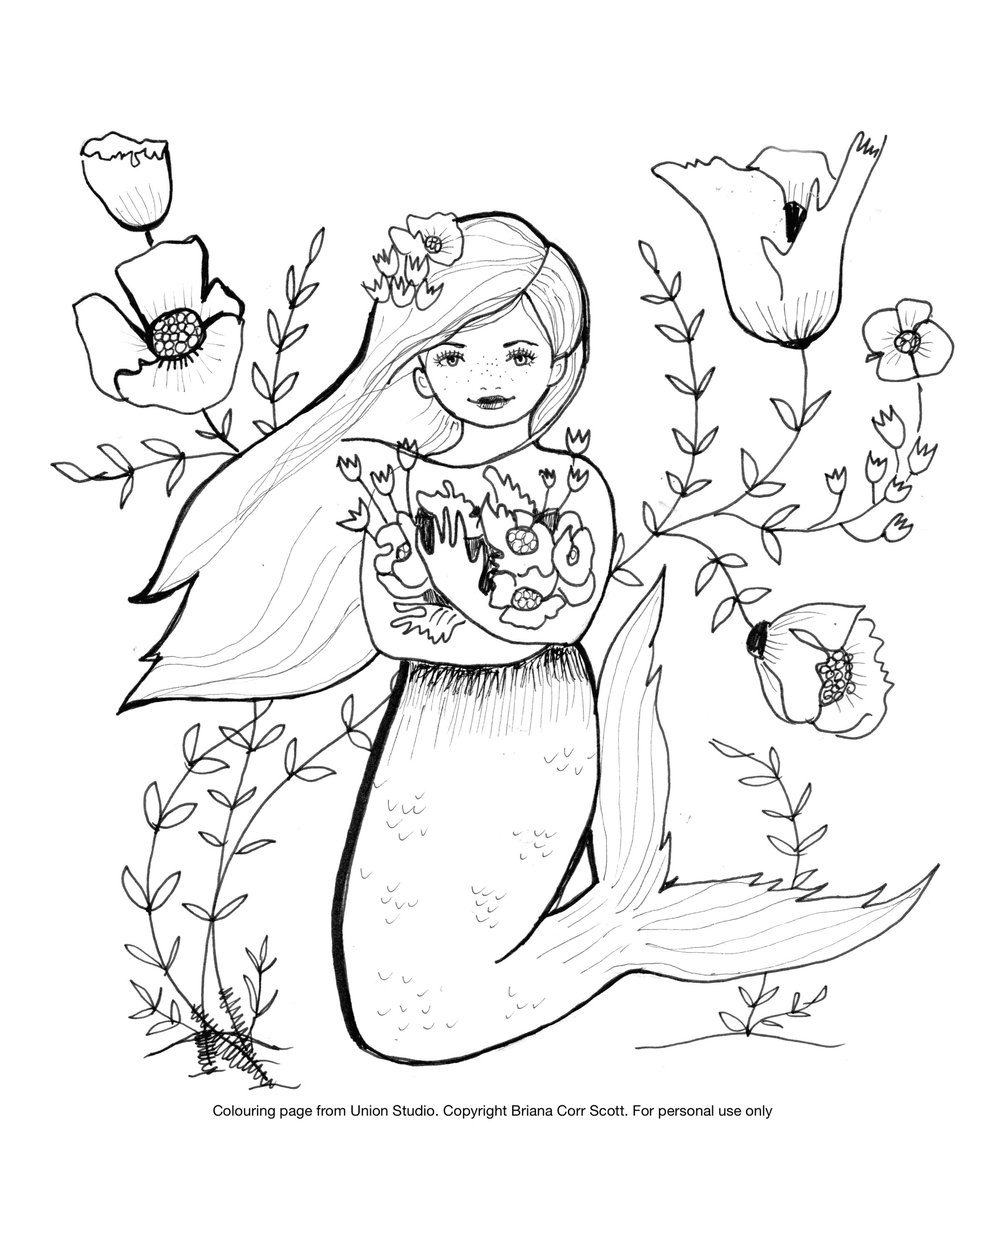 Mermaid Hugging Flowers  Personal Use Only. Copyright Briana Corr Scott